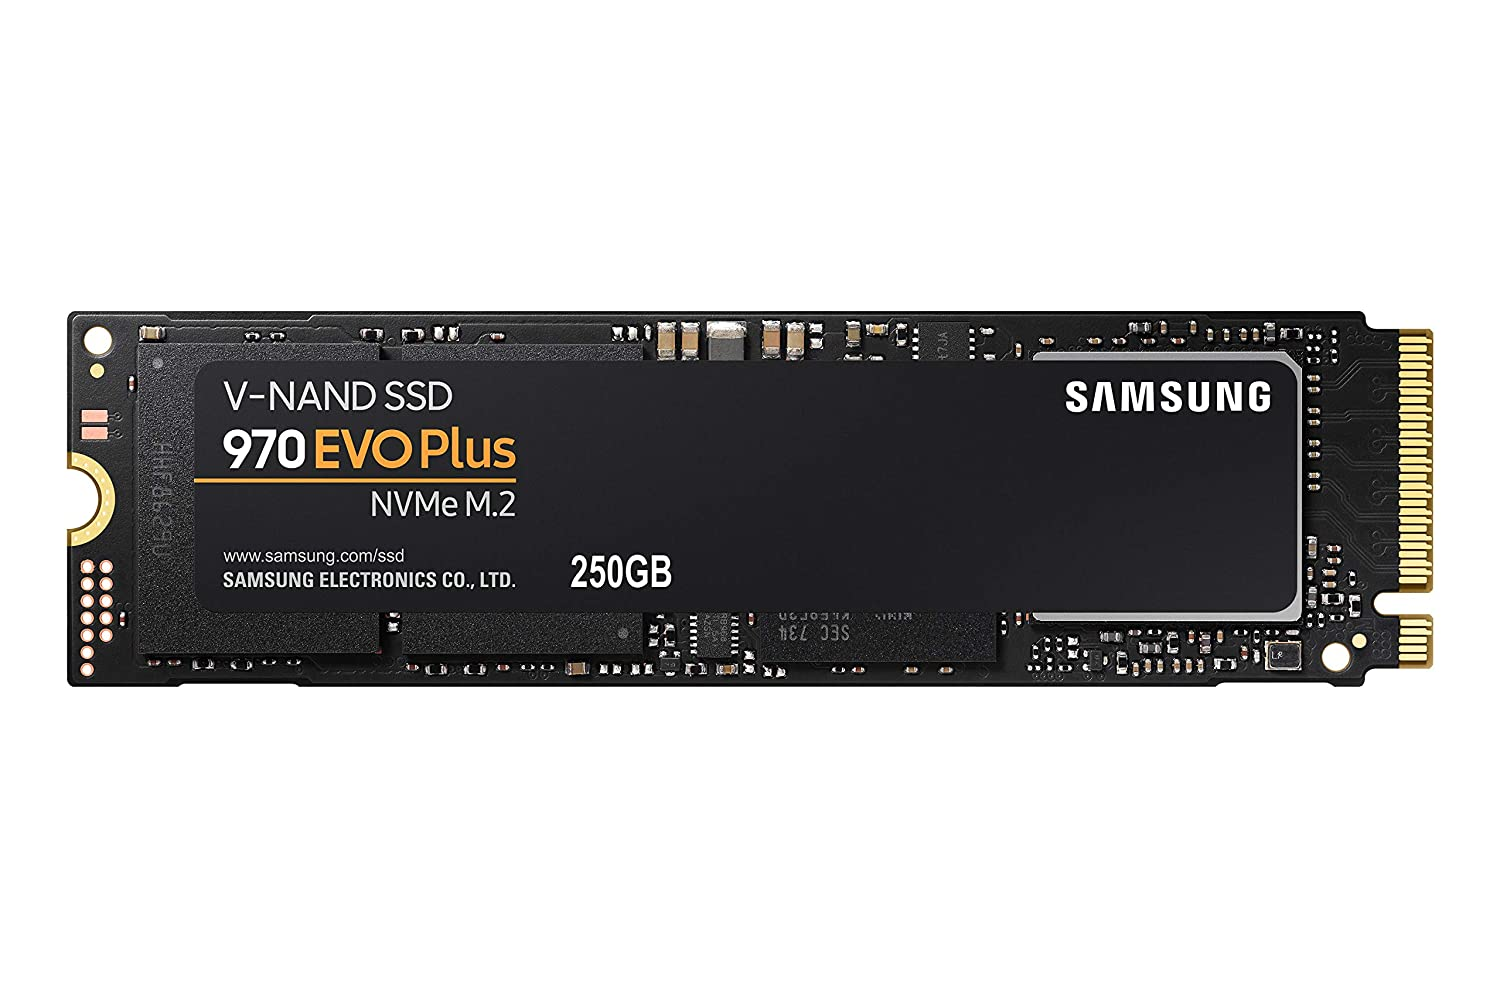 Samsung 970 EVO Plus SSD 250GB M.2 NVMe Interface